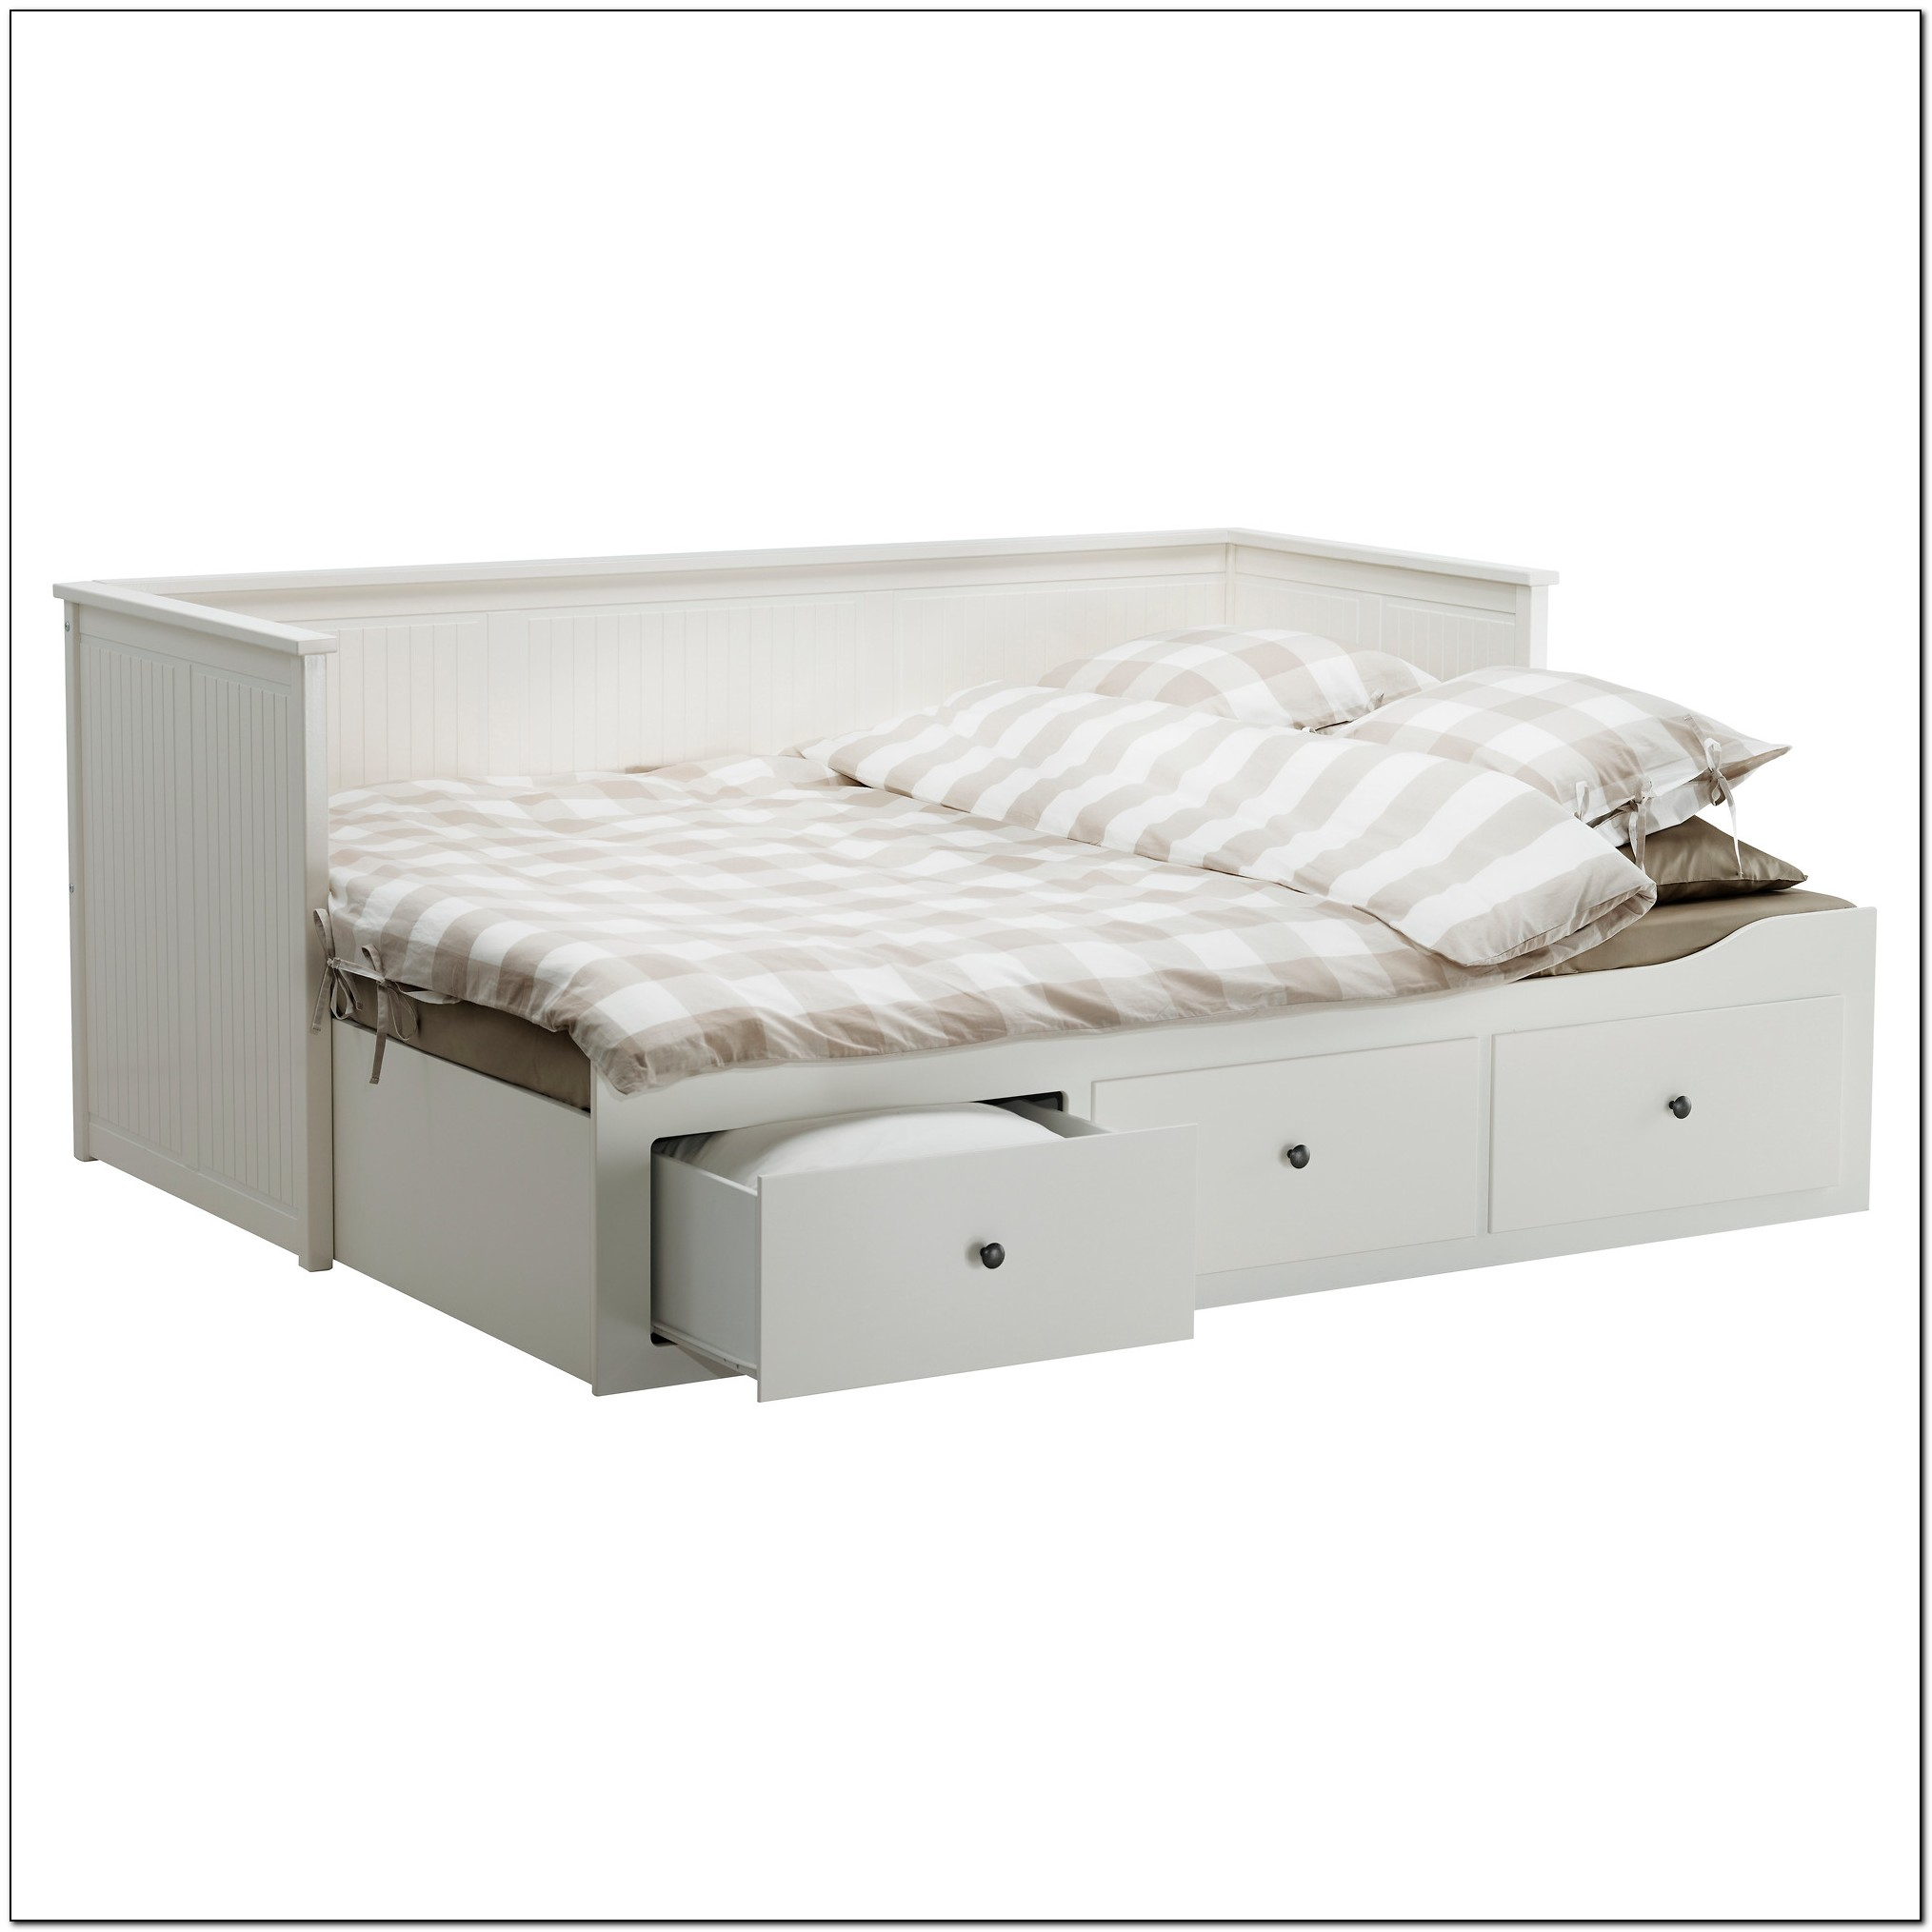 Trundle bed ikea canada beds home design ideas 8zdvez7nqa5094 for Ikea canada bedroom furniture